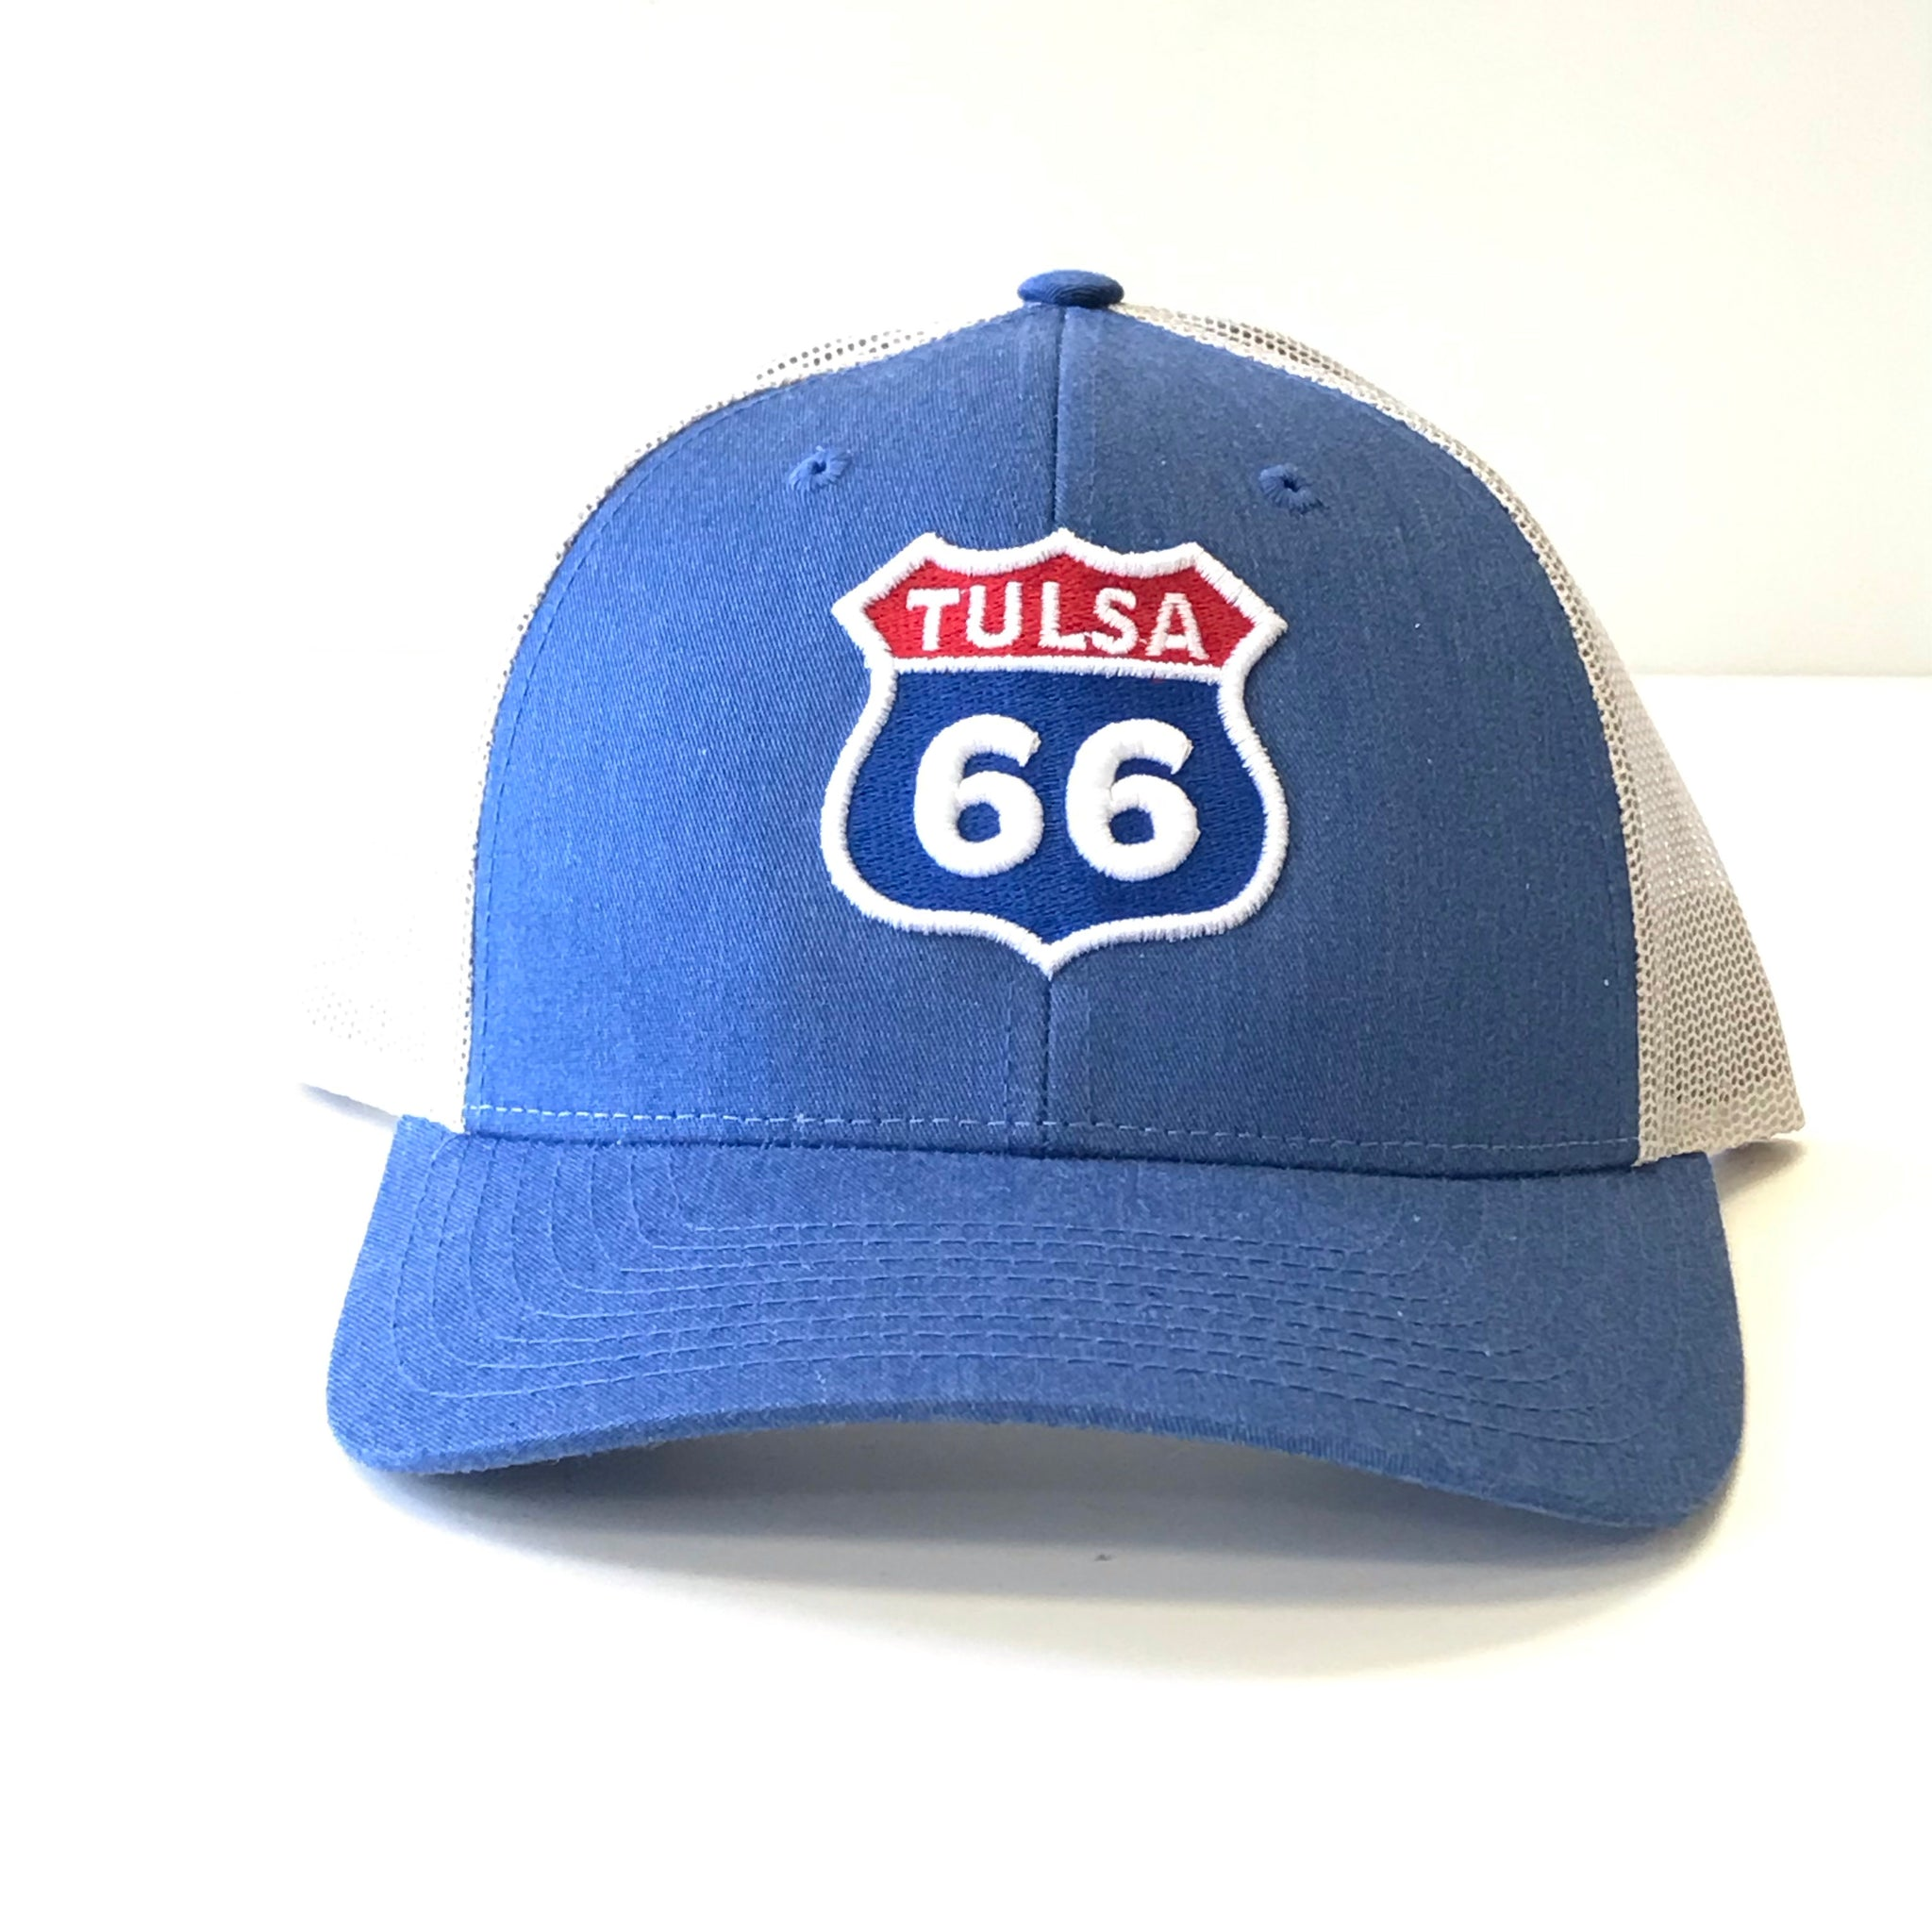 Tulsa 66 Hat - Route 66 Shield Hat